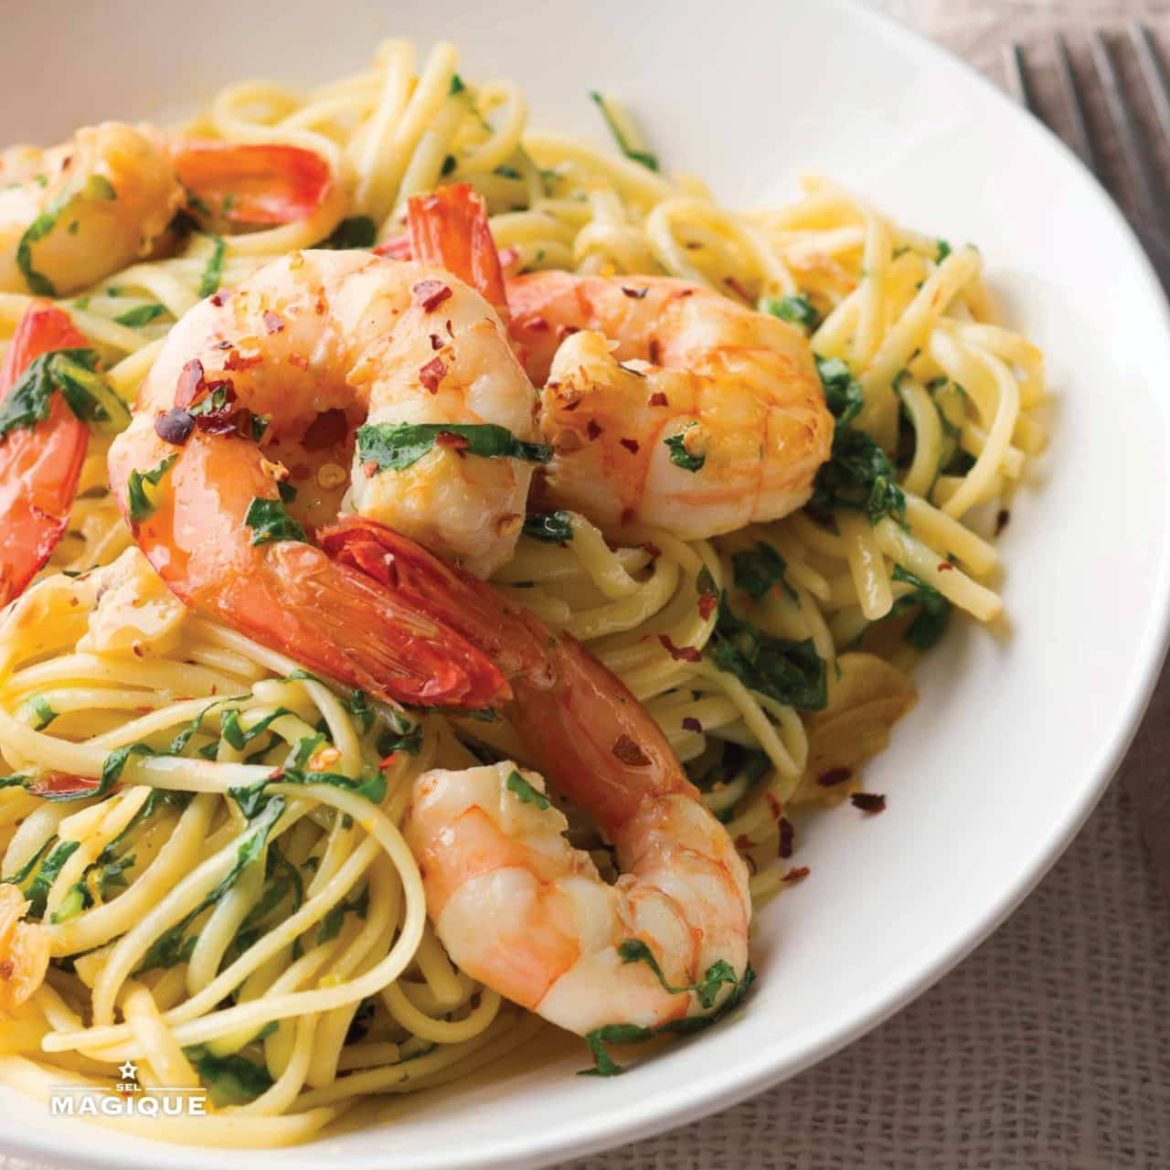 linguine-with-prawns-chilli-garlic-rocket-95151-1